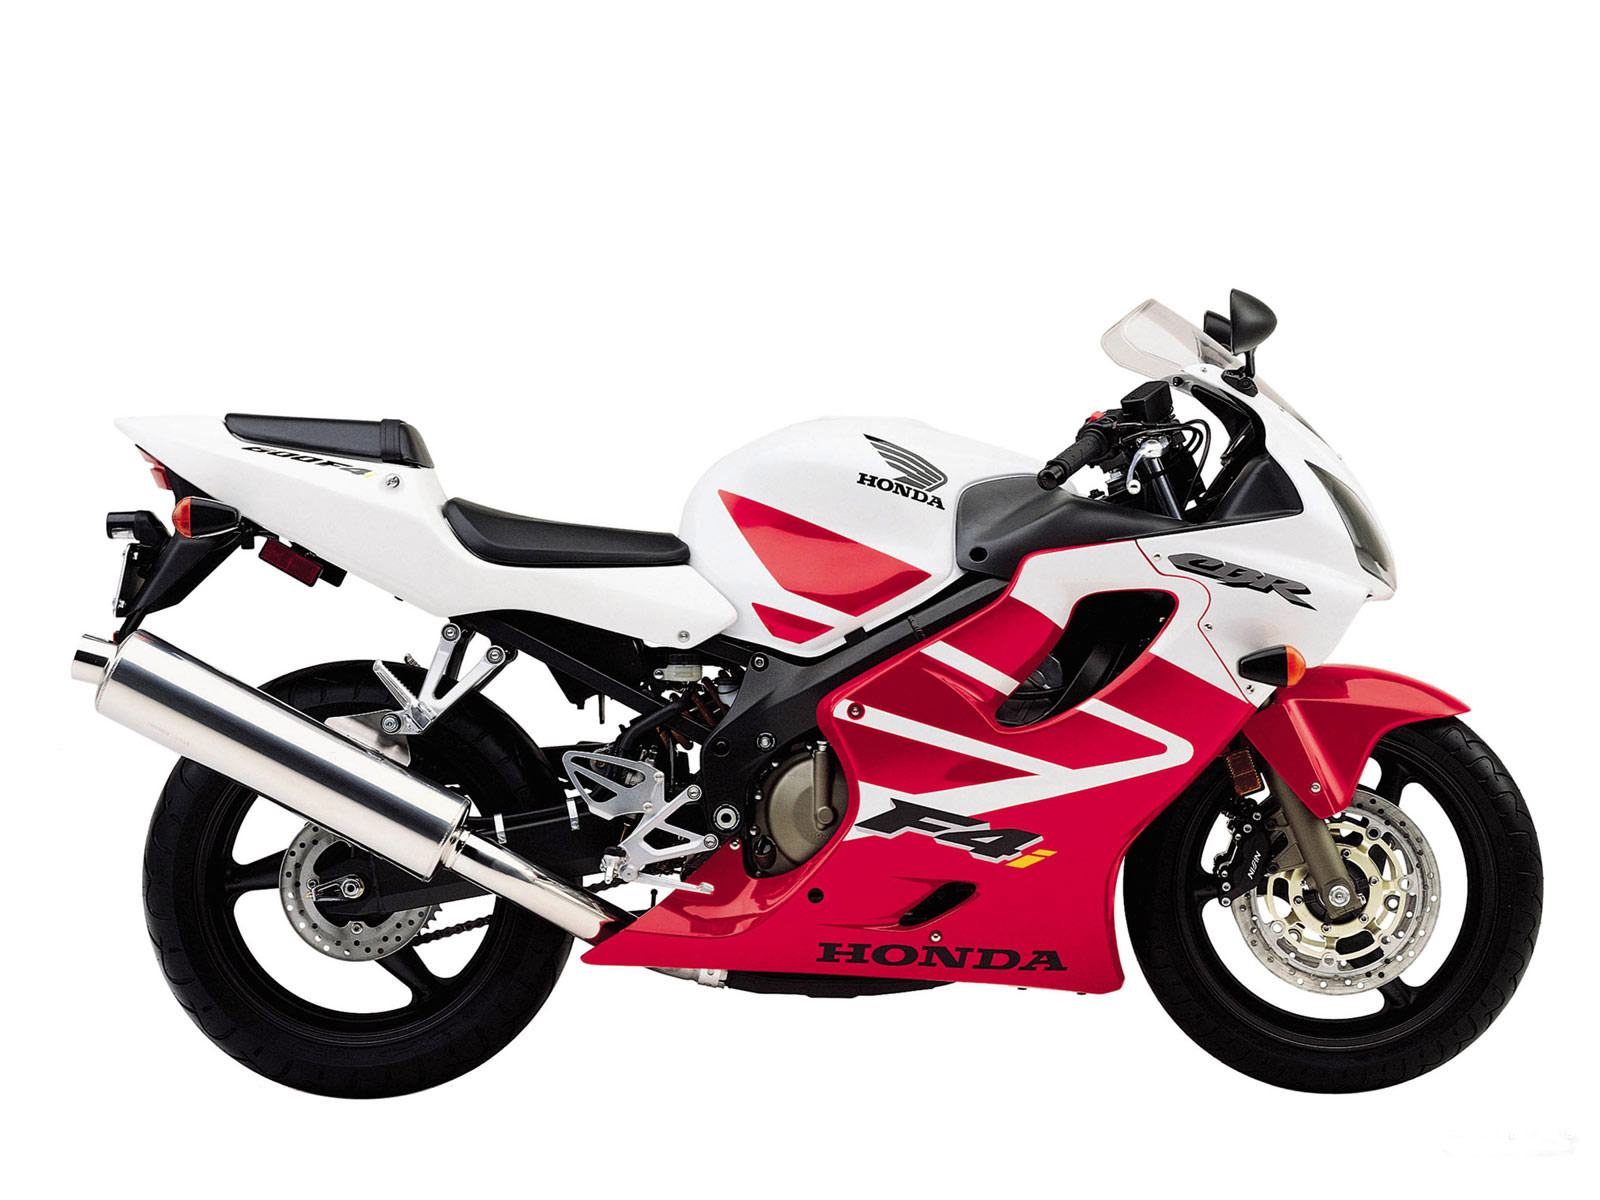 You can also find the latest images of the honda cbr 600 f4i 2001 in the  gallery below :